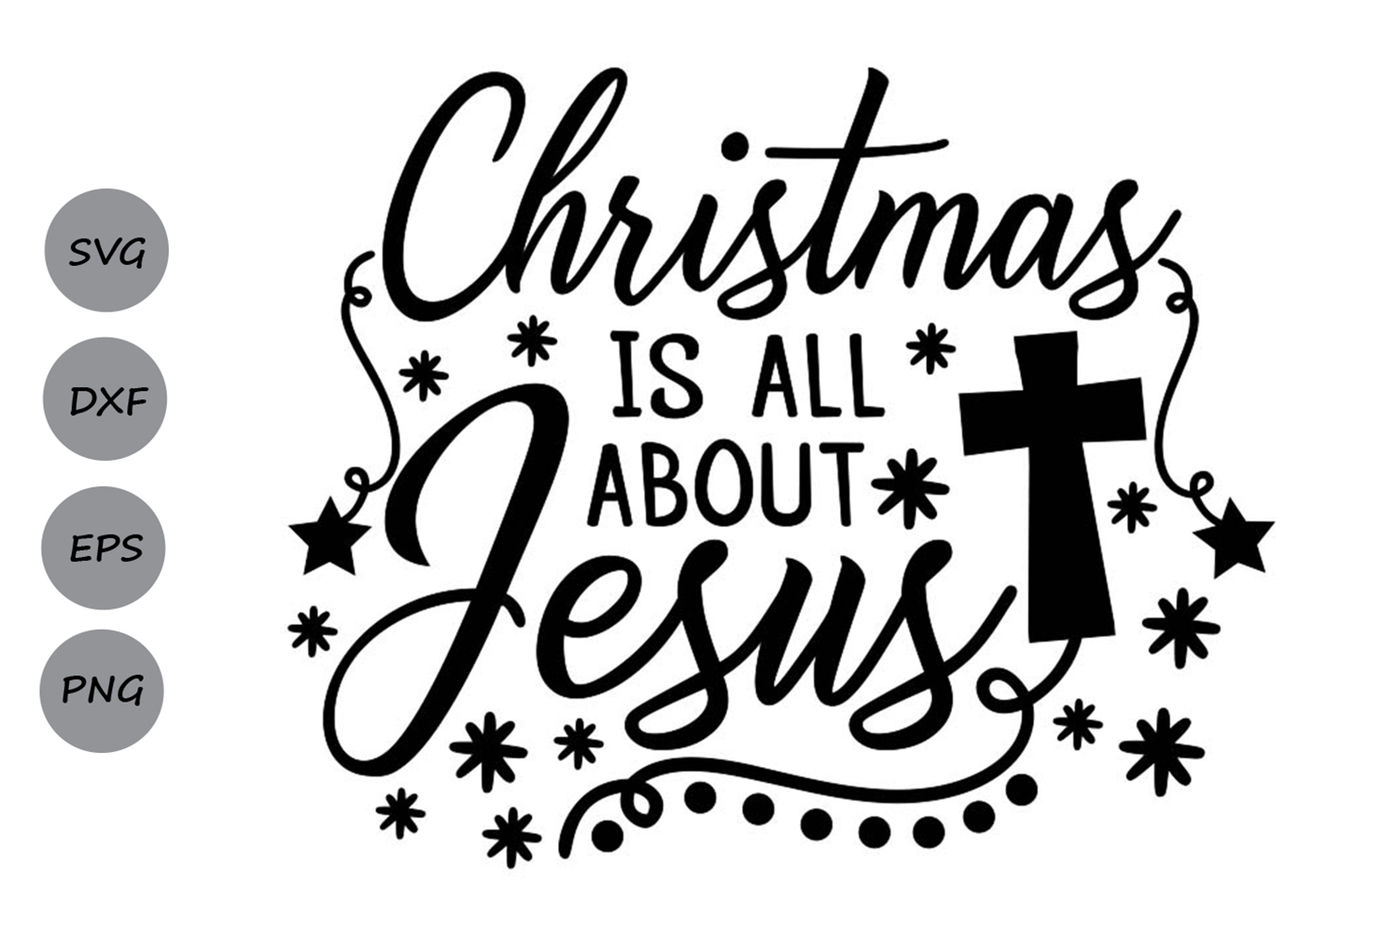 christmas is all about jesus svg, christmas svg, jesus svg